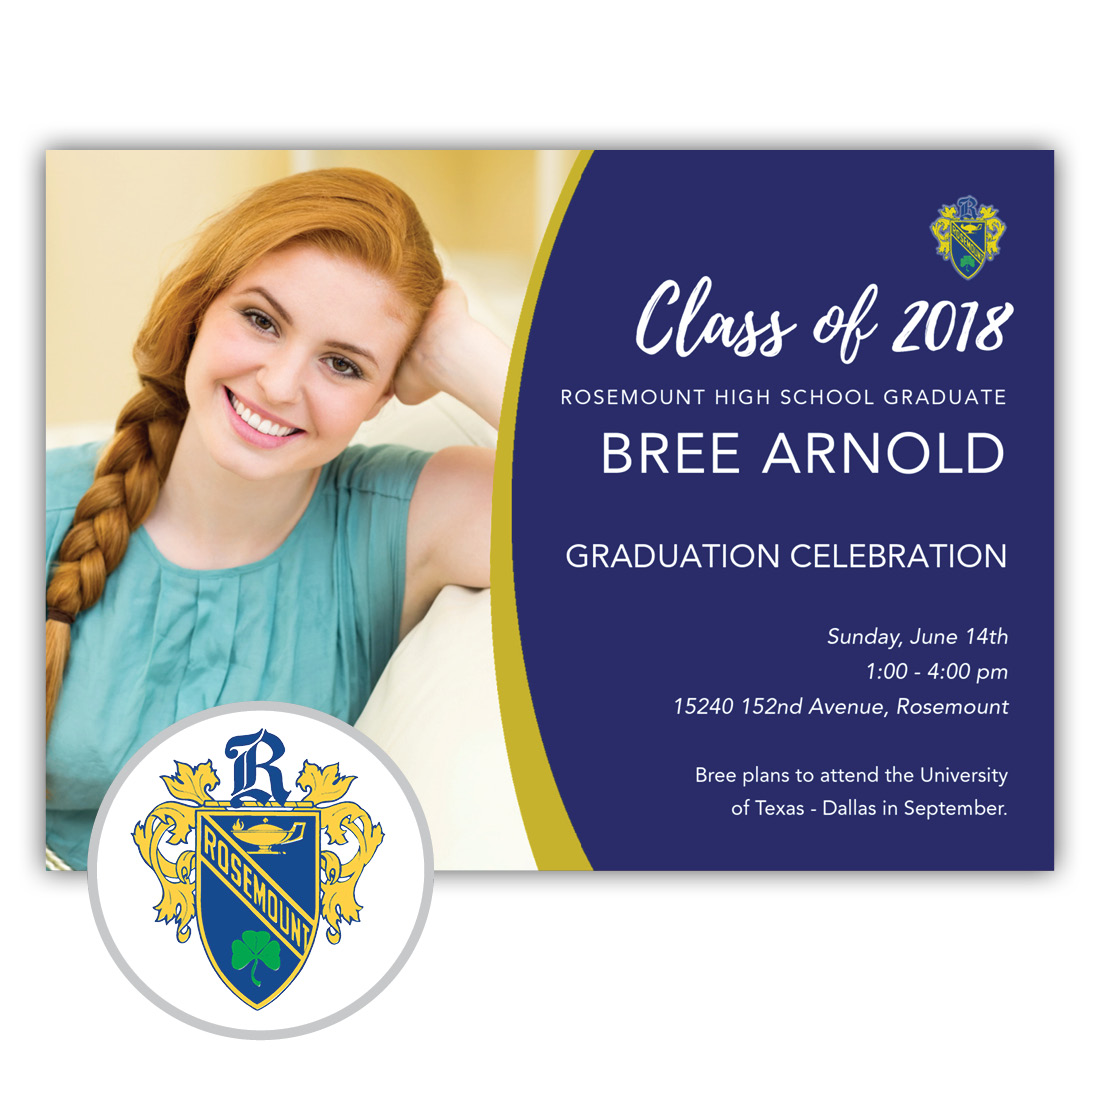 School Spirit, Rosemount - Focus in Pix Graduation Party Invitation or Announcement